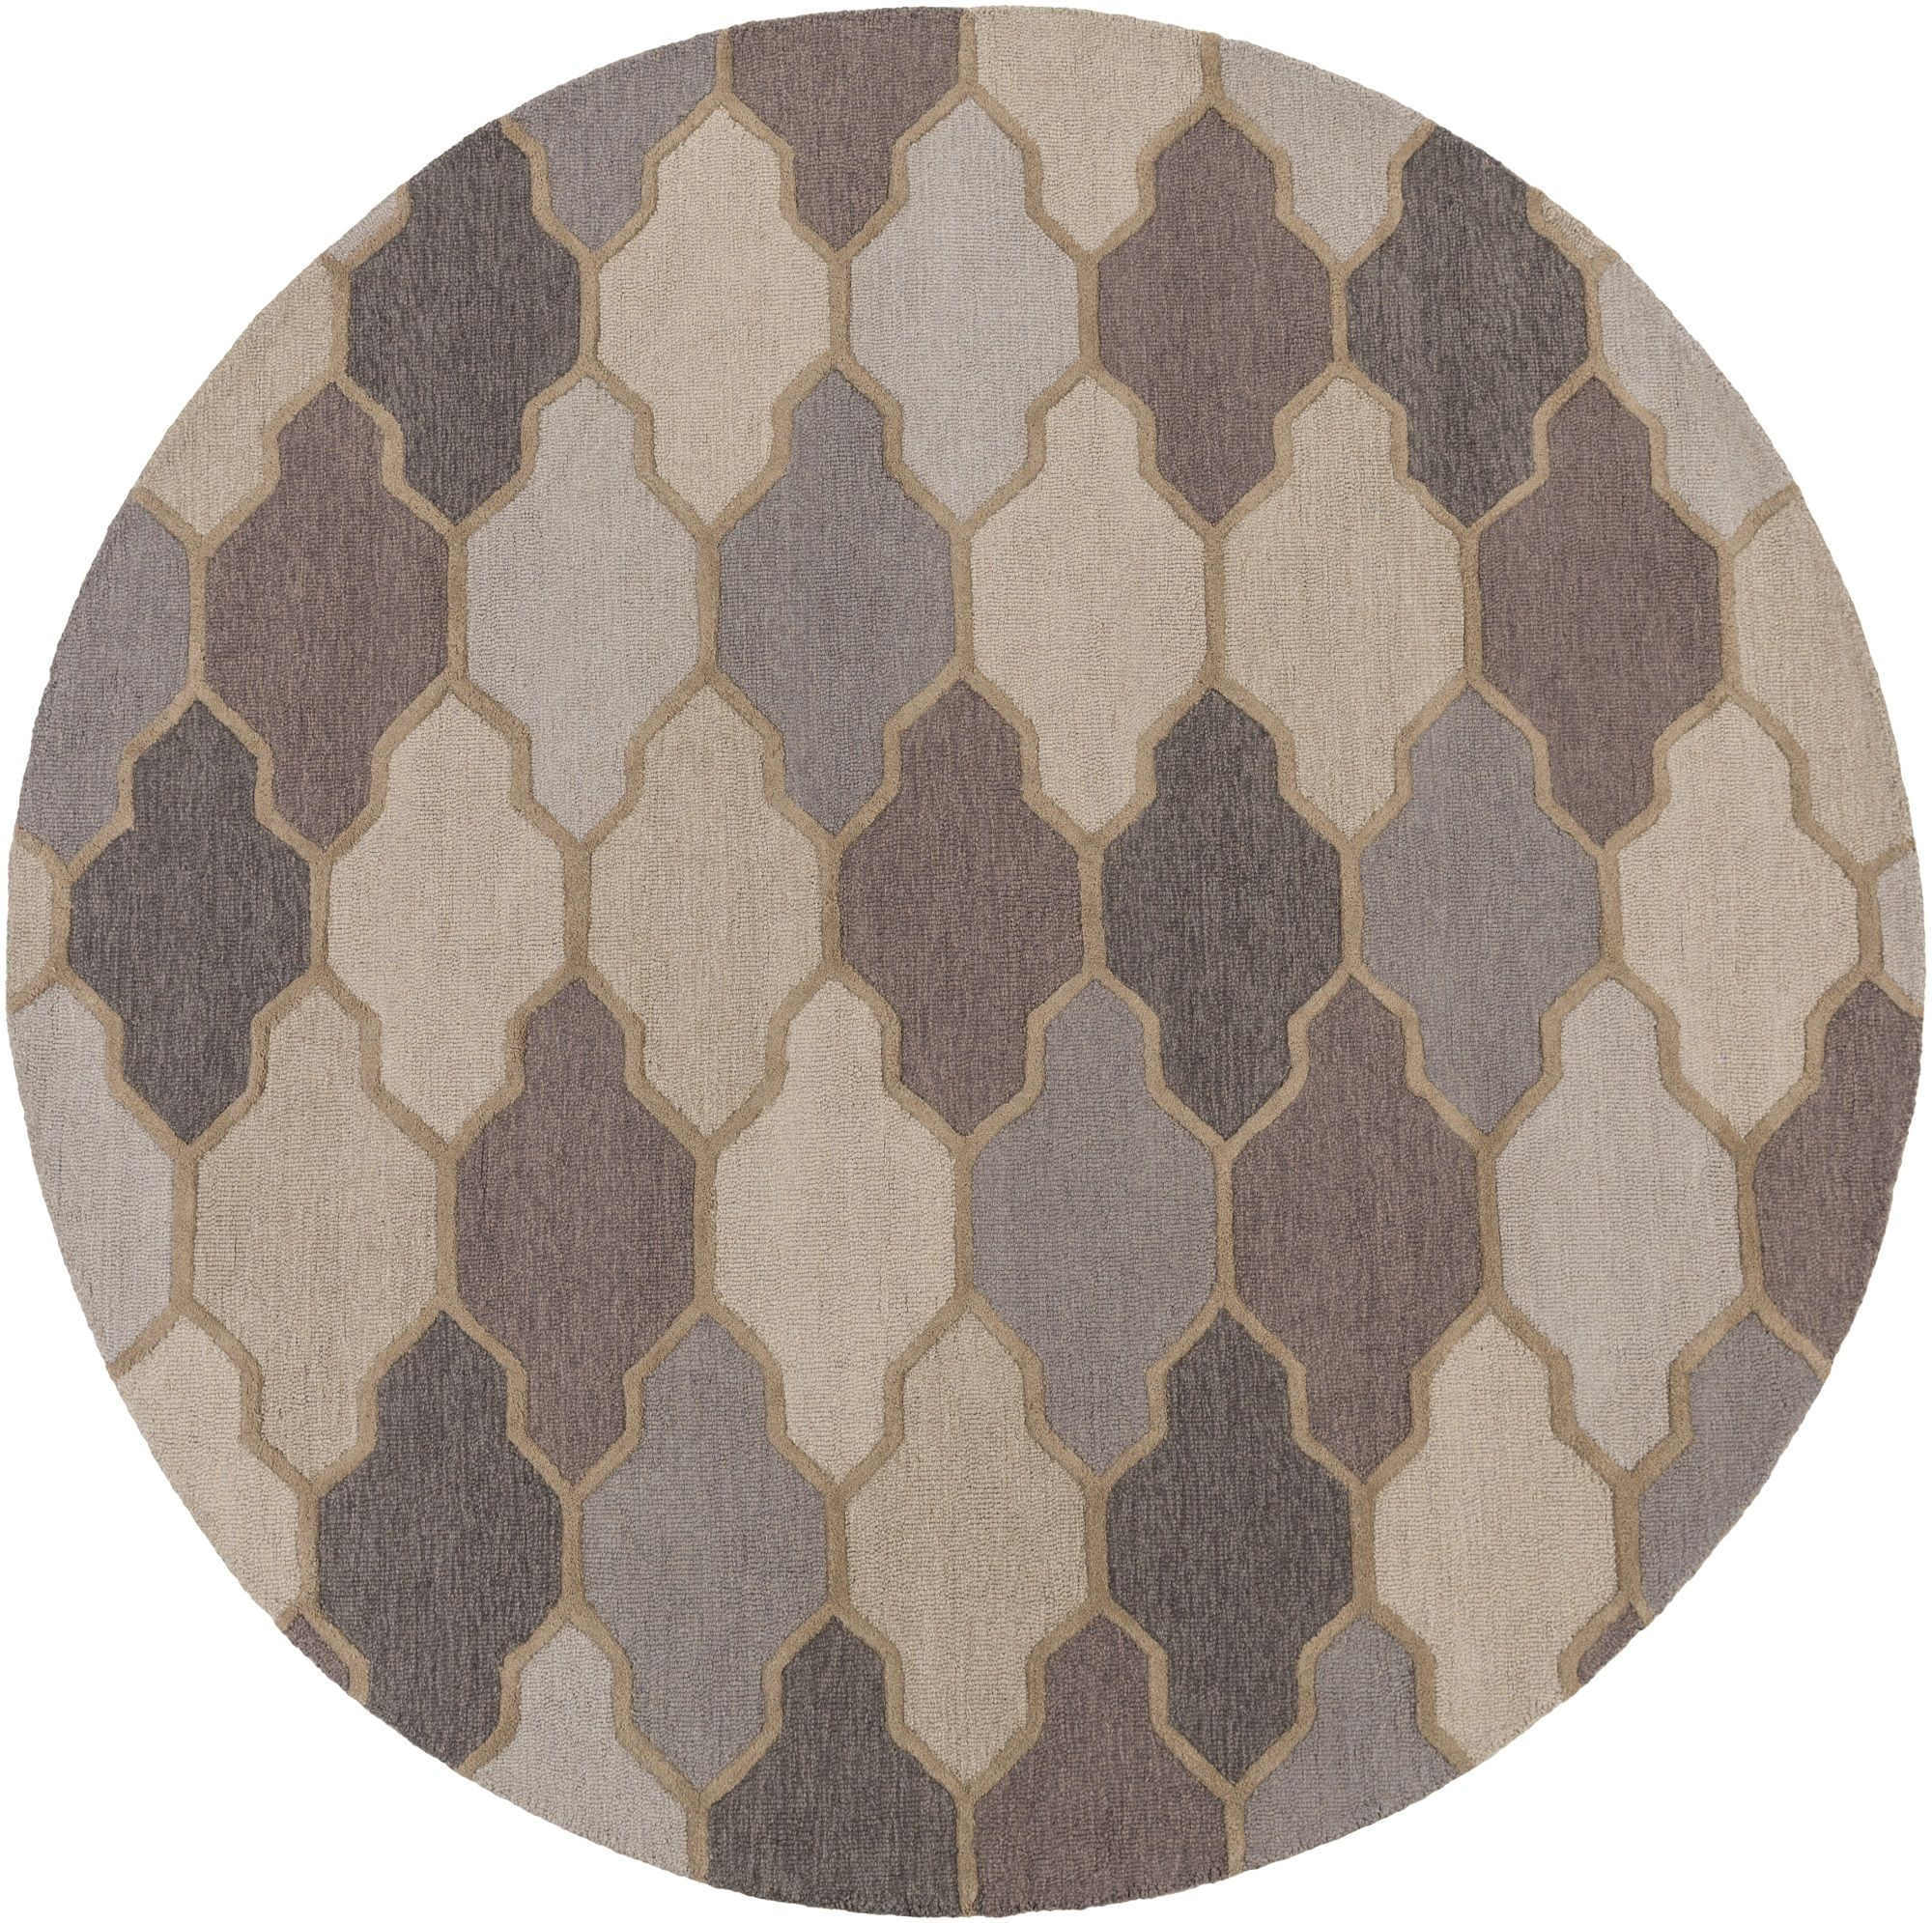 3.5' Trellis Patterned Gray and Brown Hand Tufted Round Area Throw Rug